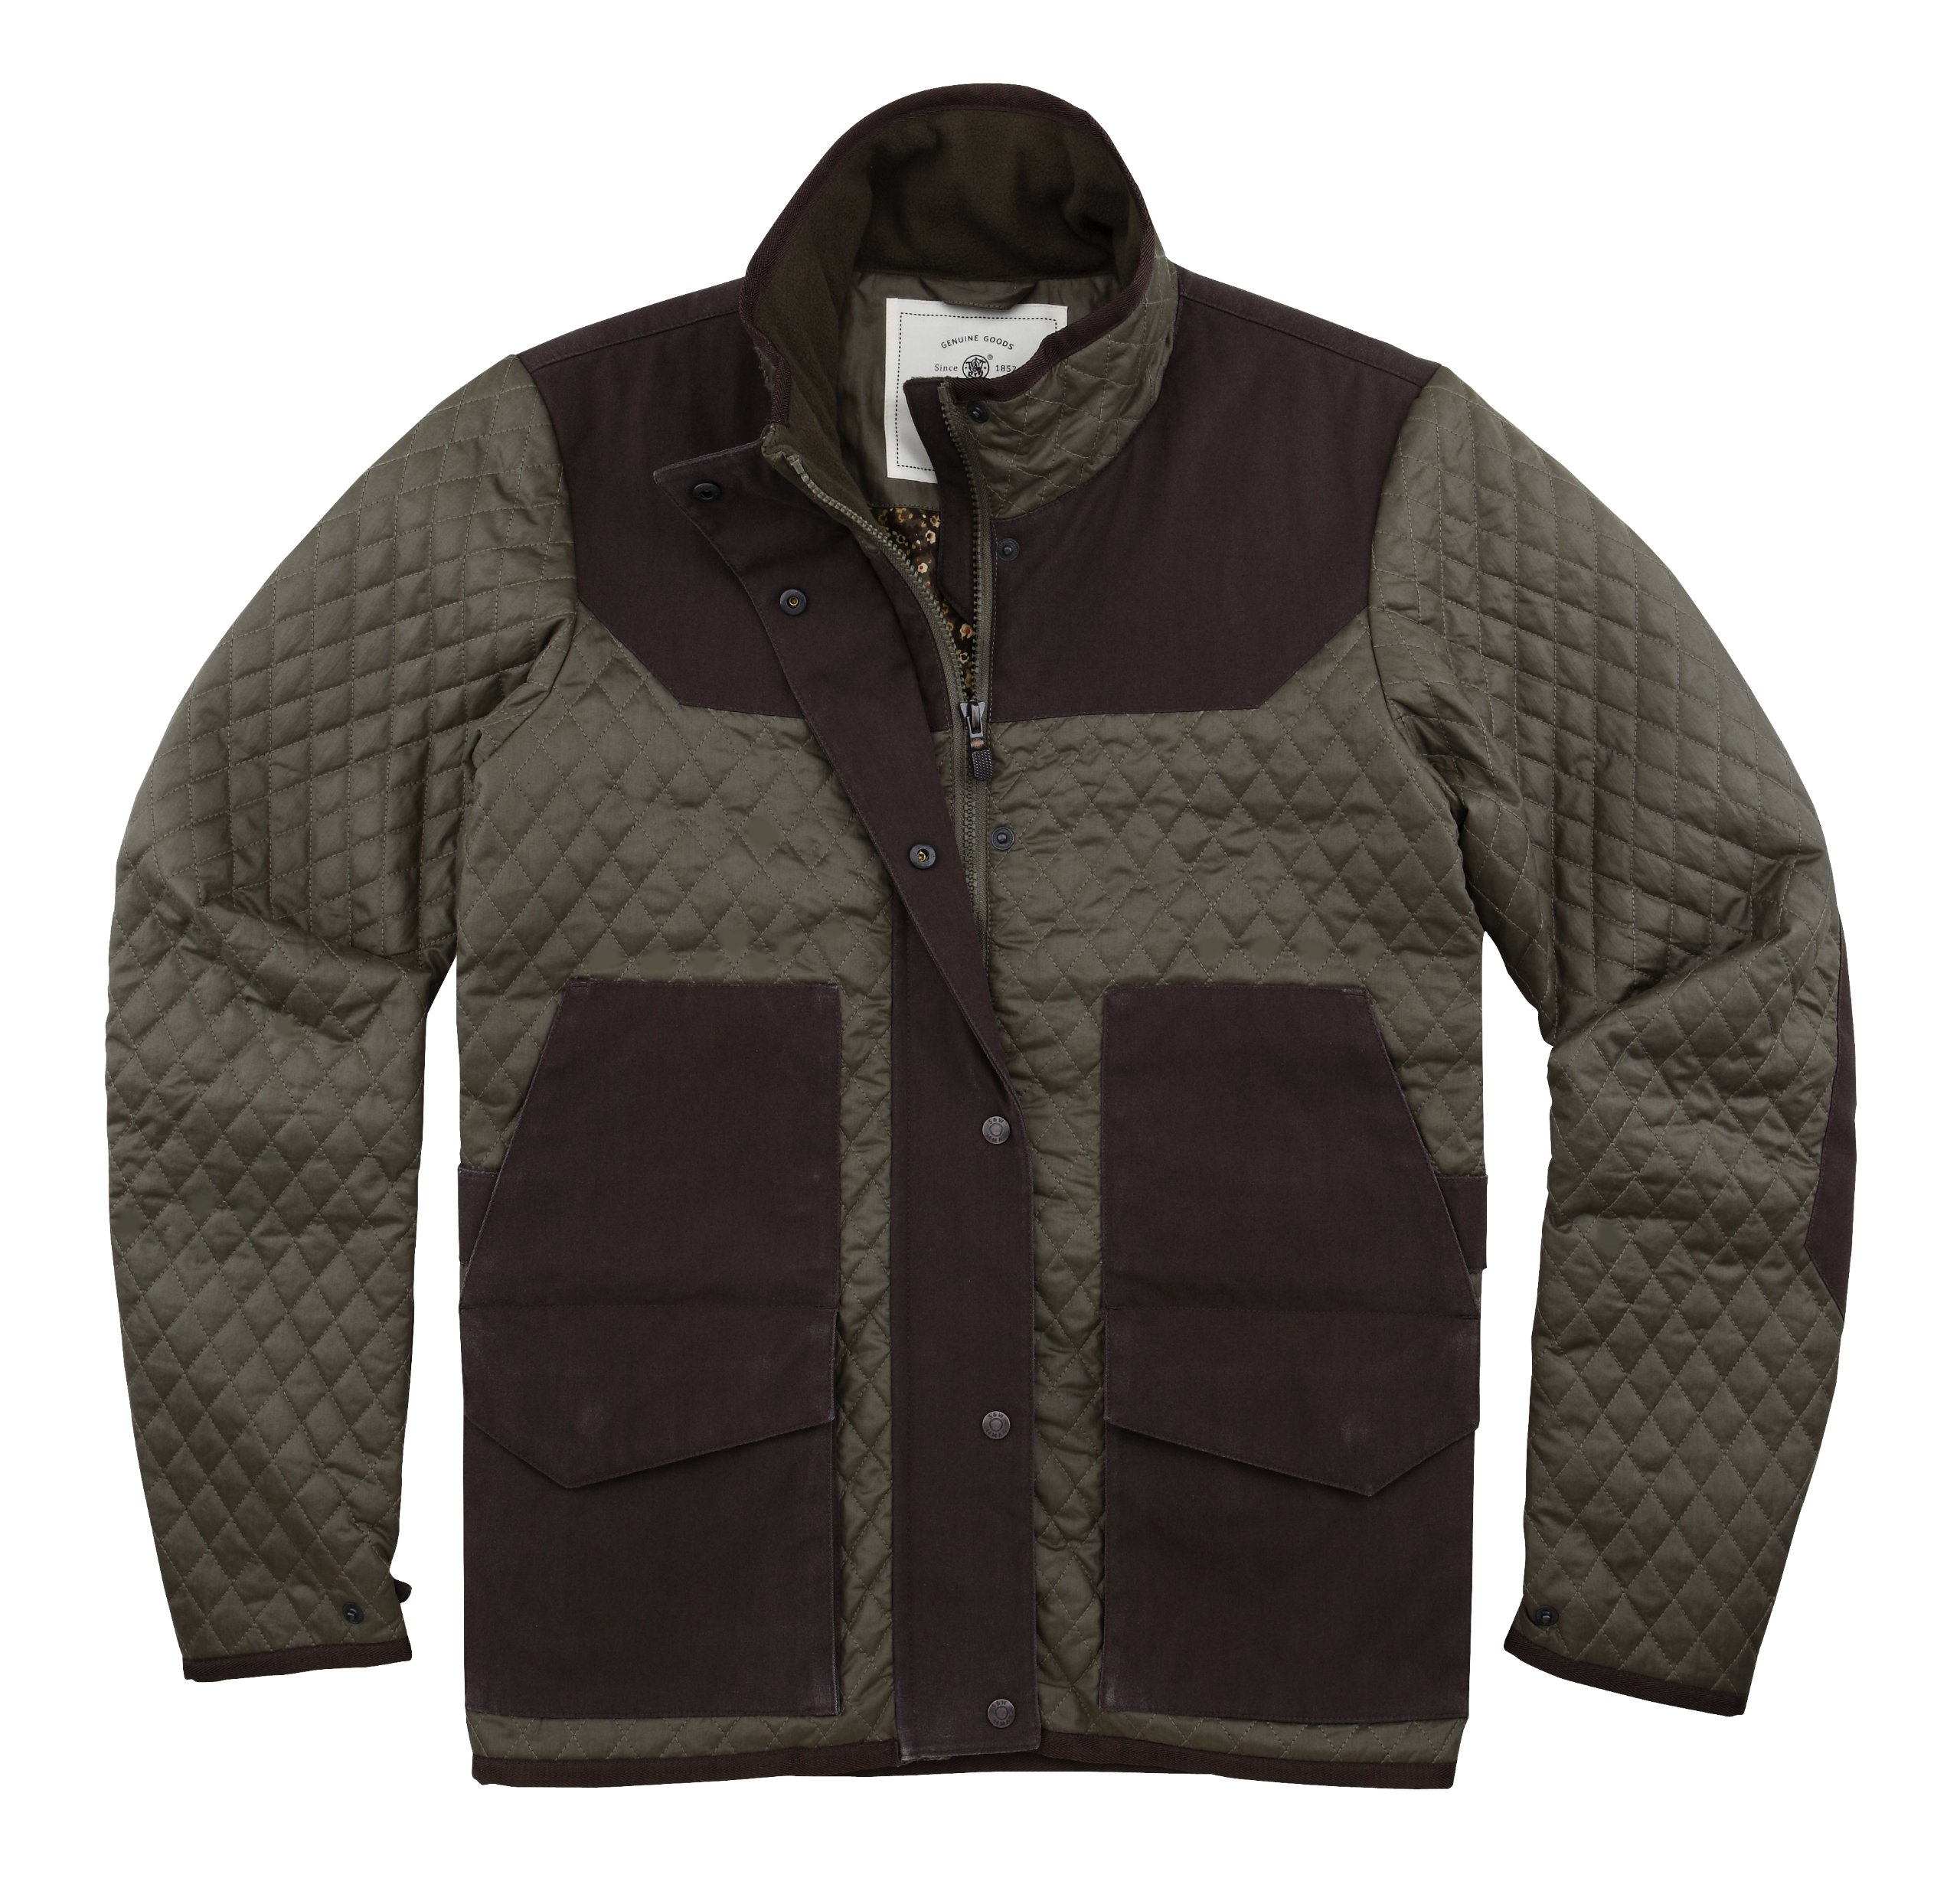 Smith &Wesson Women's Tracking Jacket Small Olive Green